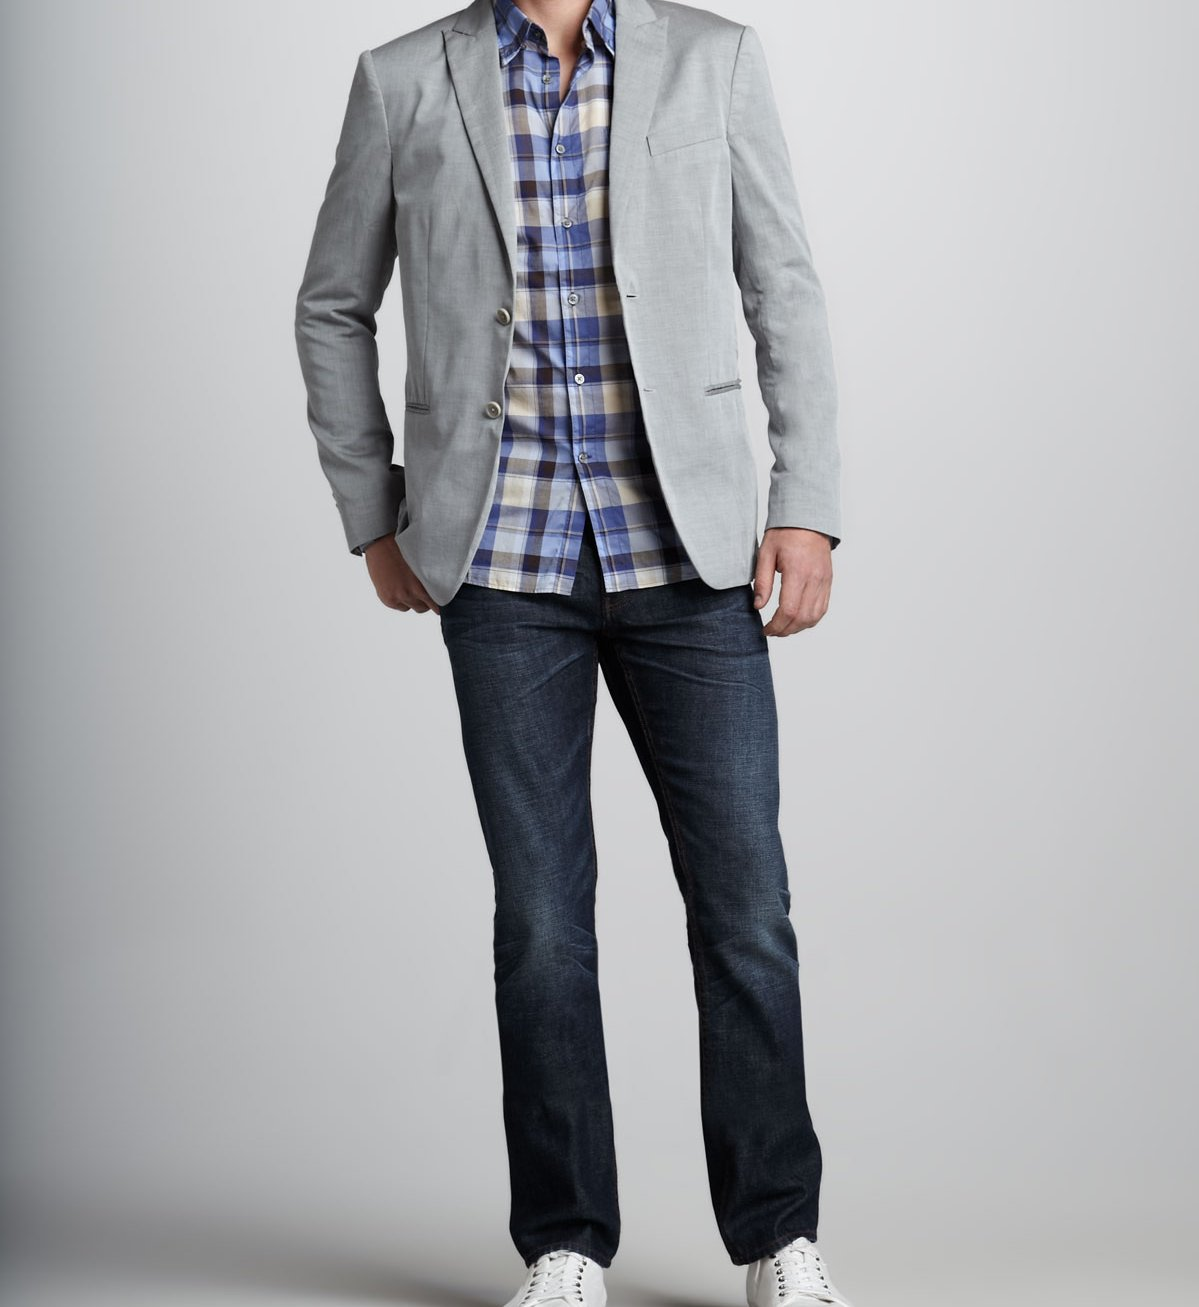 Sport Coat with Jeans Fit 10 Necessary Rules for Wearing a Sport Coat or Suit Jacket with Jeans